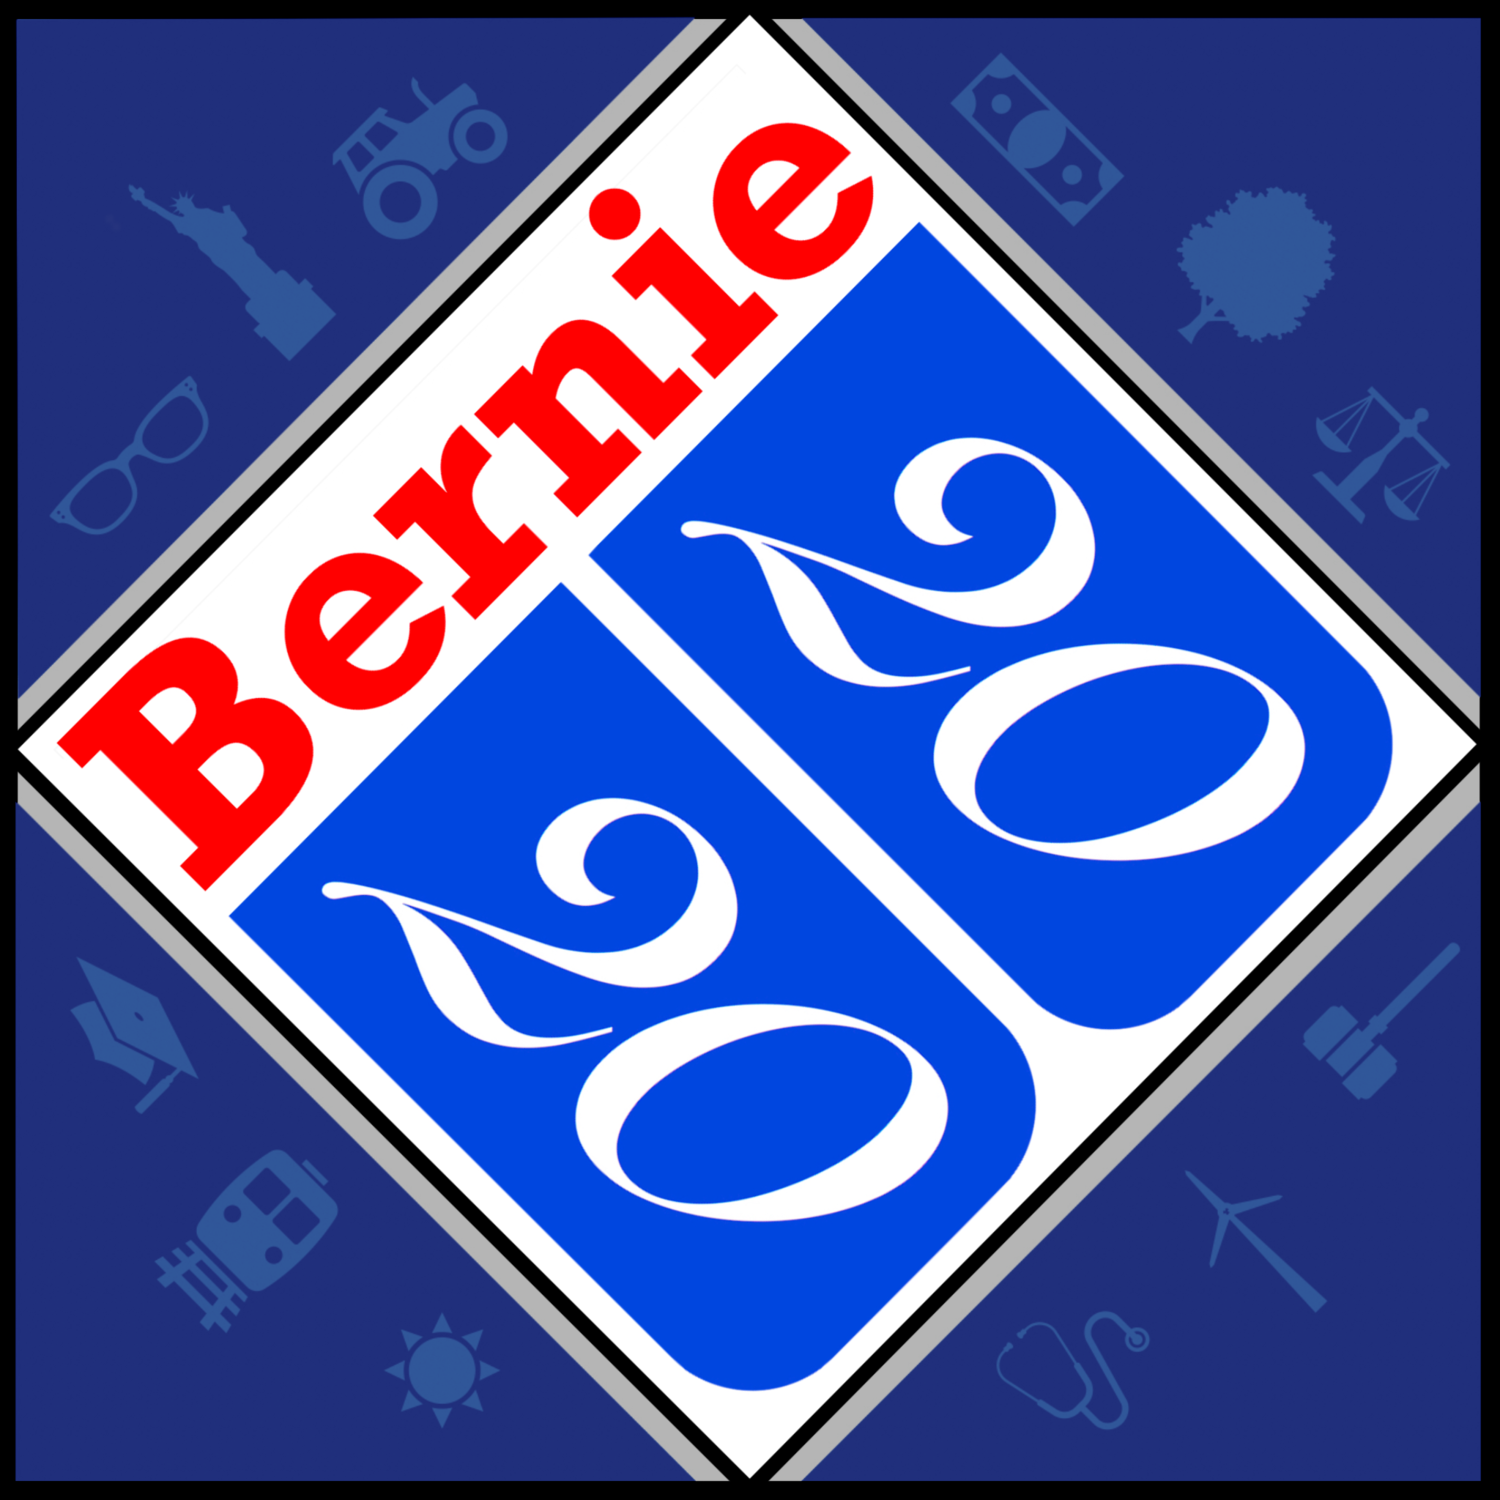 Bernie-2020 | 167 - George Floyd, Police Policy, and the Black Radical Revolution